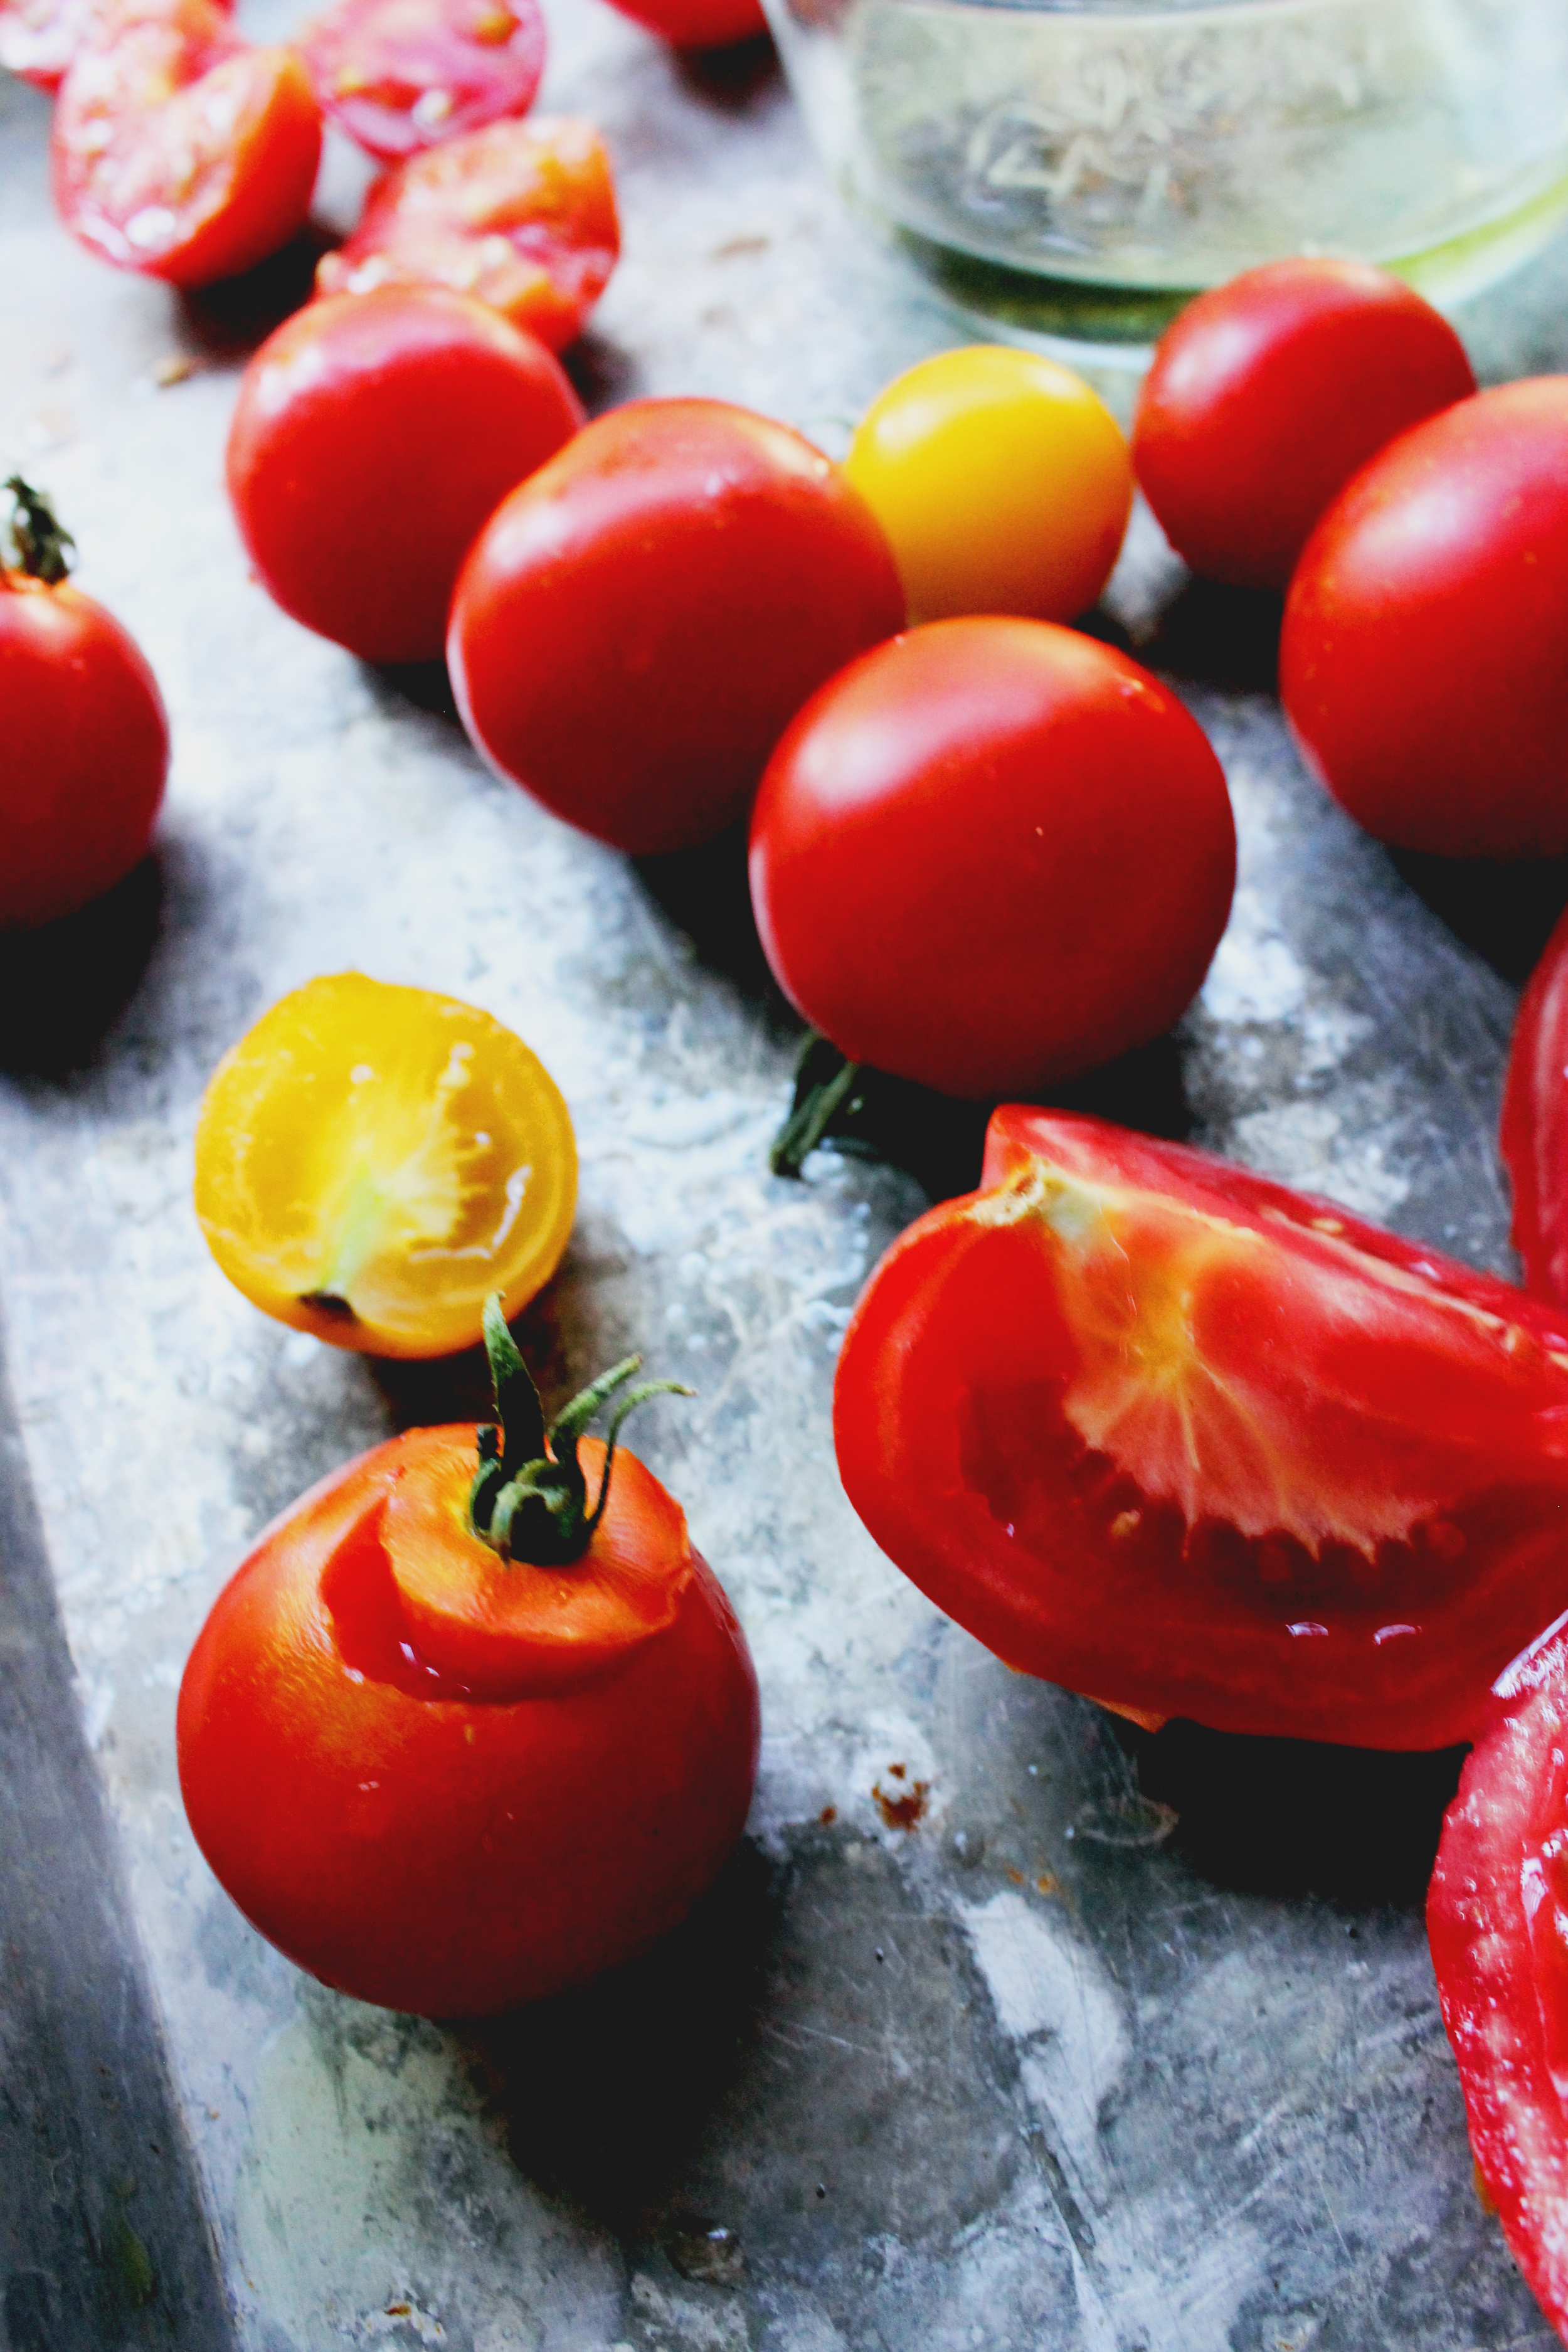 oven-roasted-tomatoes-4.jpg